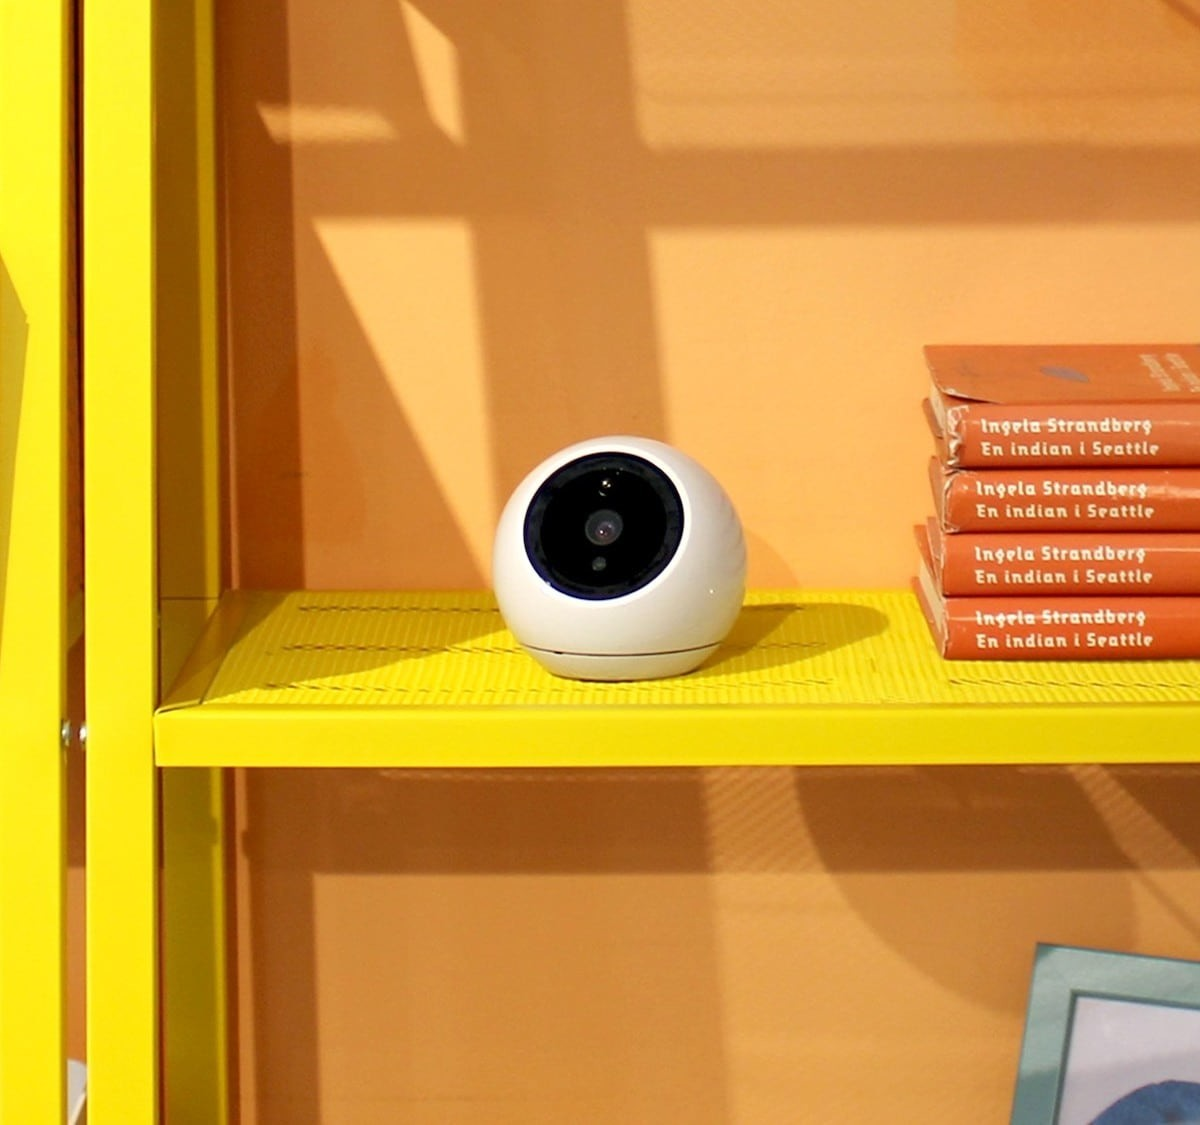 This biometric security camera detects faces and intruders